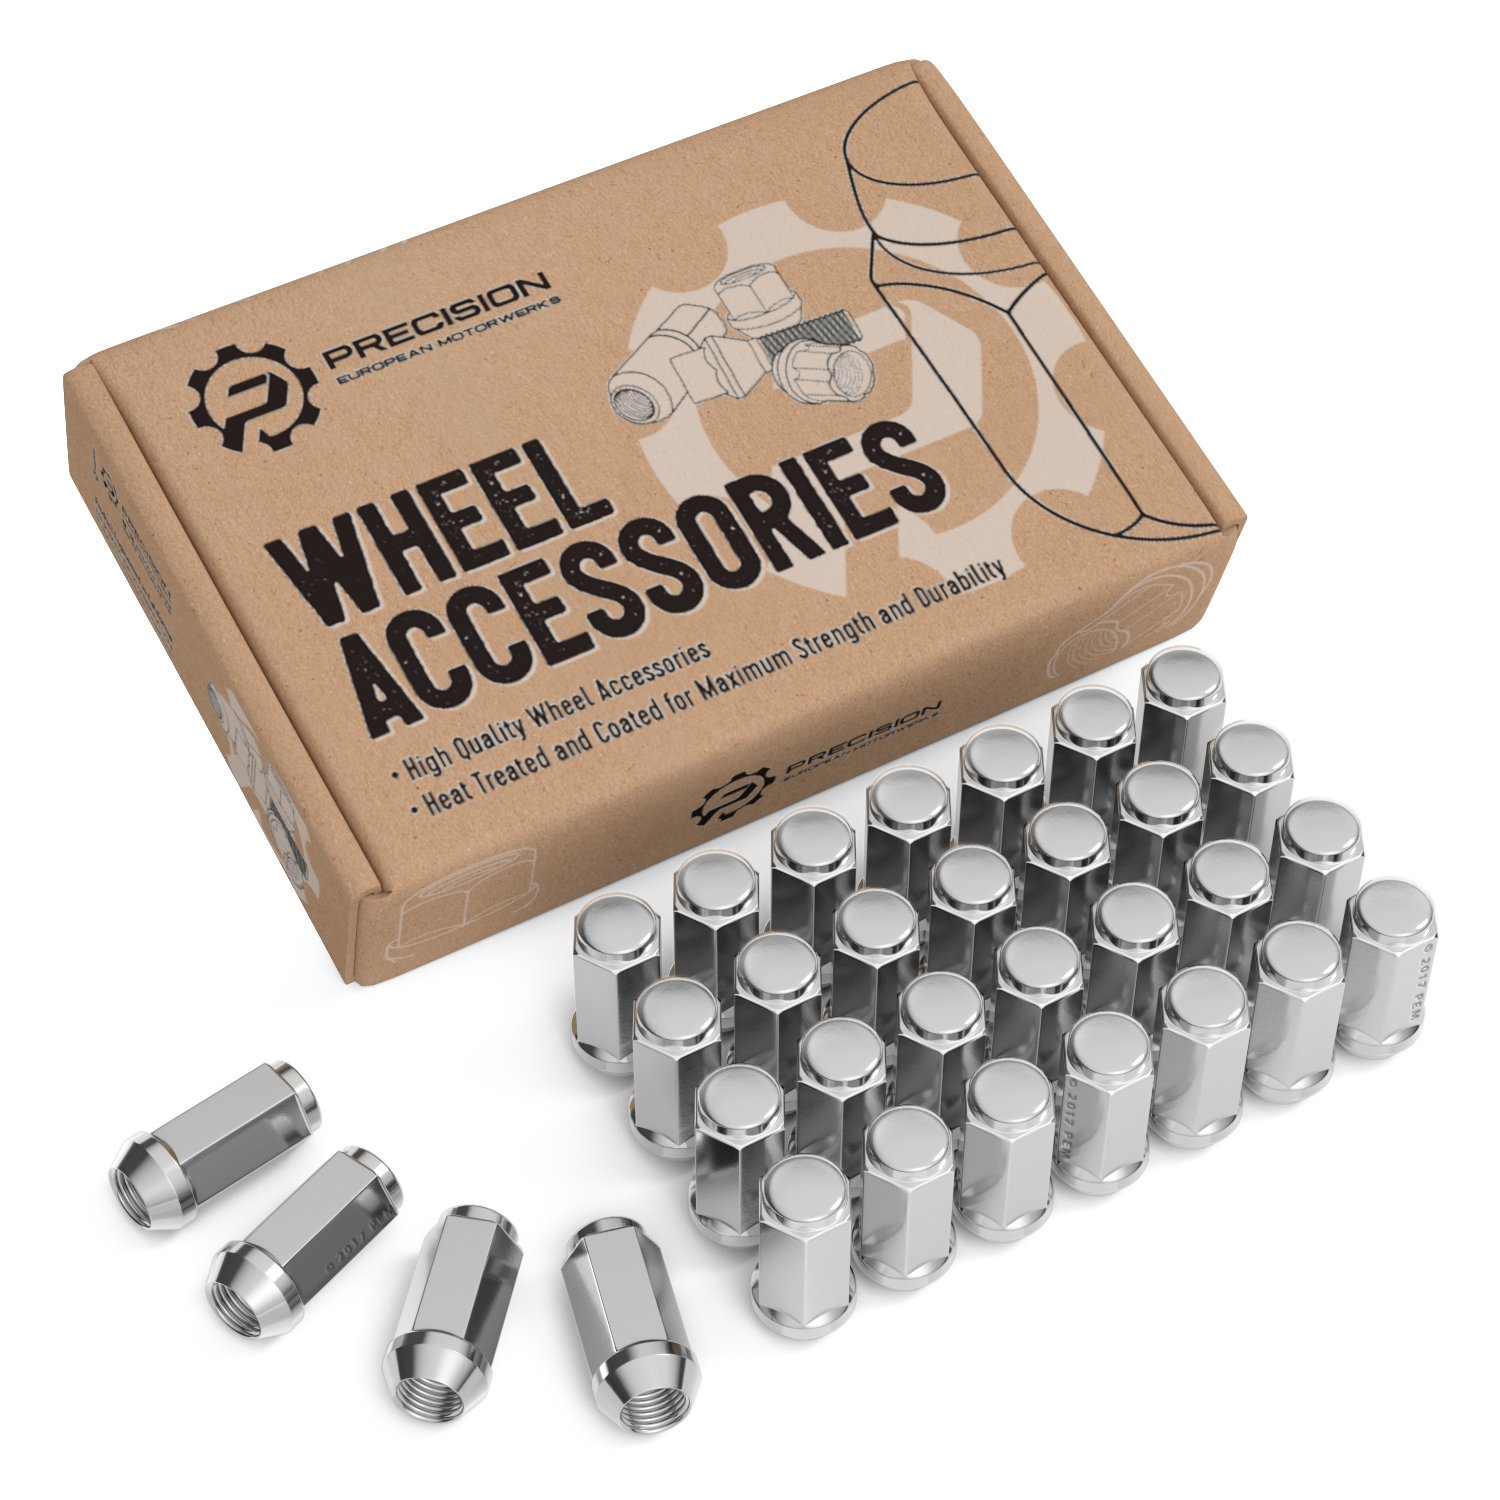 32pcs Silver Chrome Bulge Lug Nuts - 9/16-18 Thread Size - Conical Cone Taper Acorn Seat Closed End Long Extended - 1.8 inch Length - Installs with 19mm or 3/4 inch Hex Socket - for 8Lug Wheels